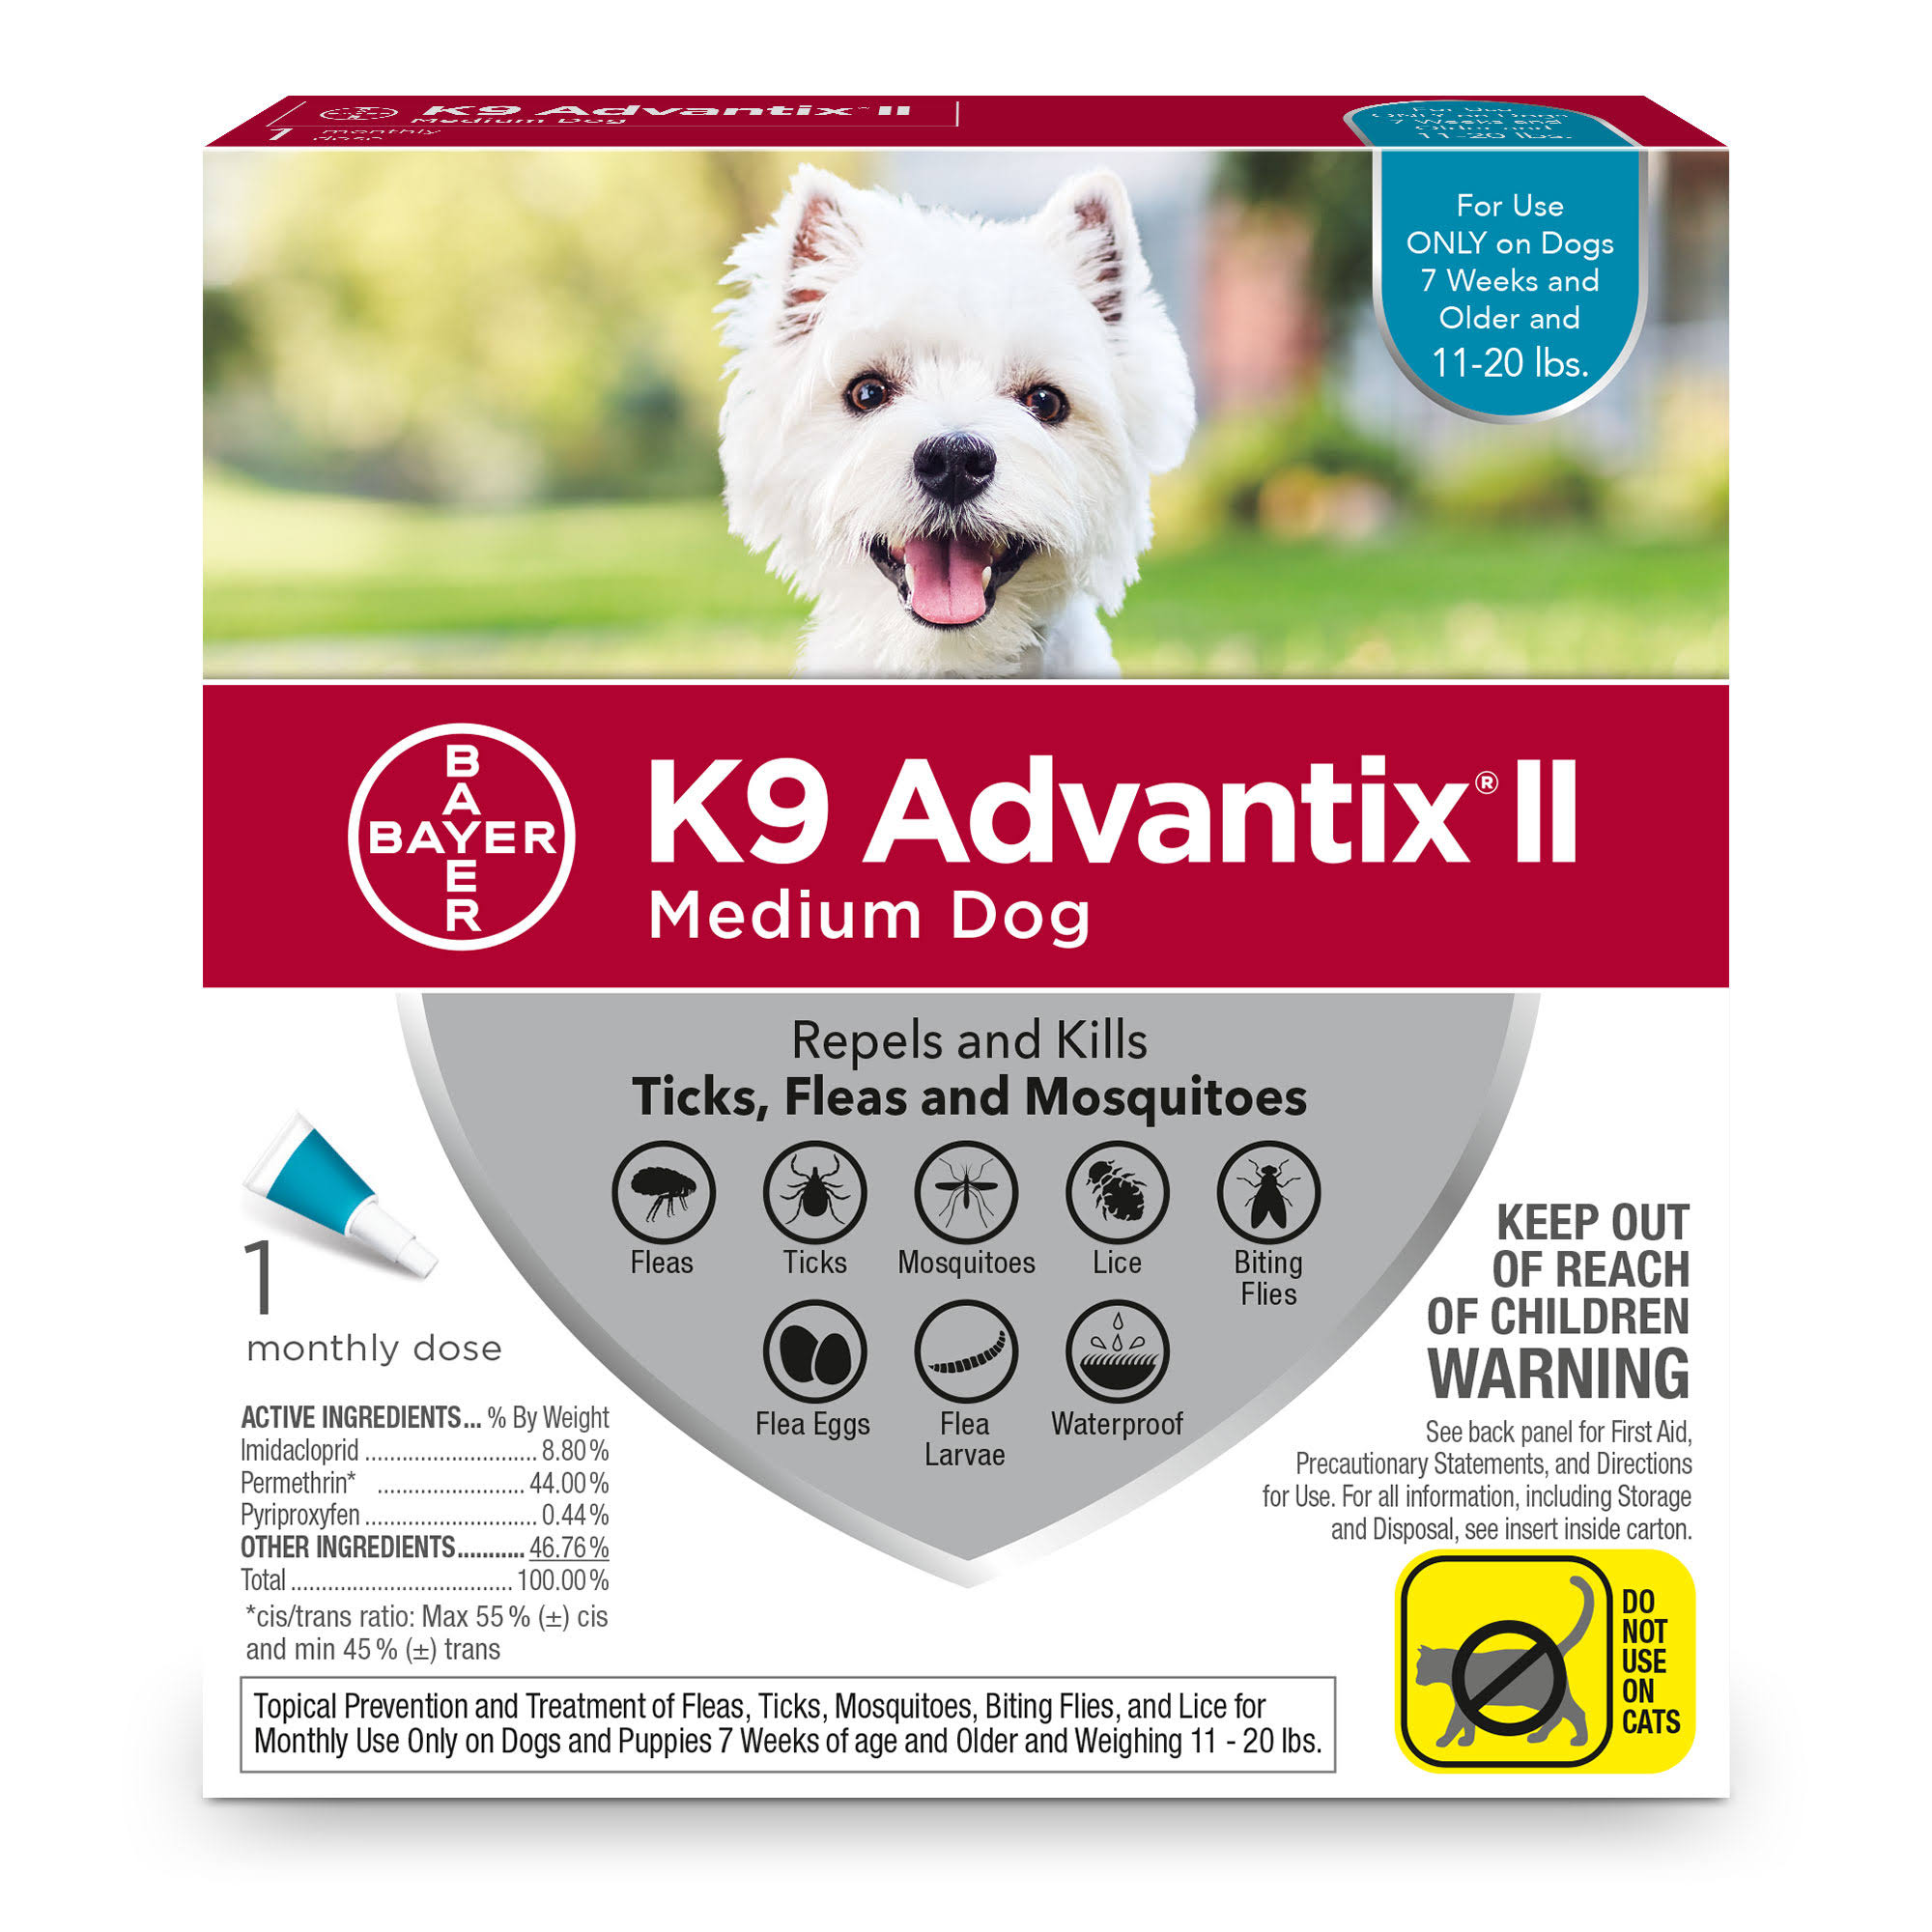 K9 Advantix II Medium Dog 1 Month Dose